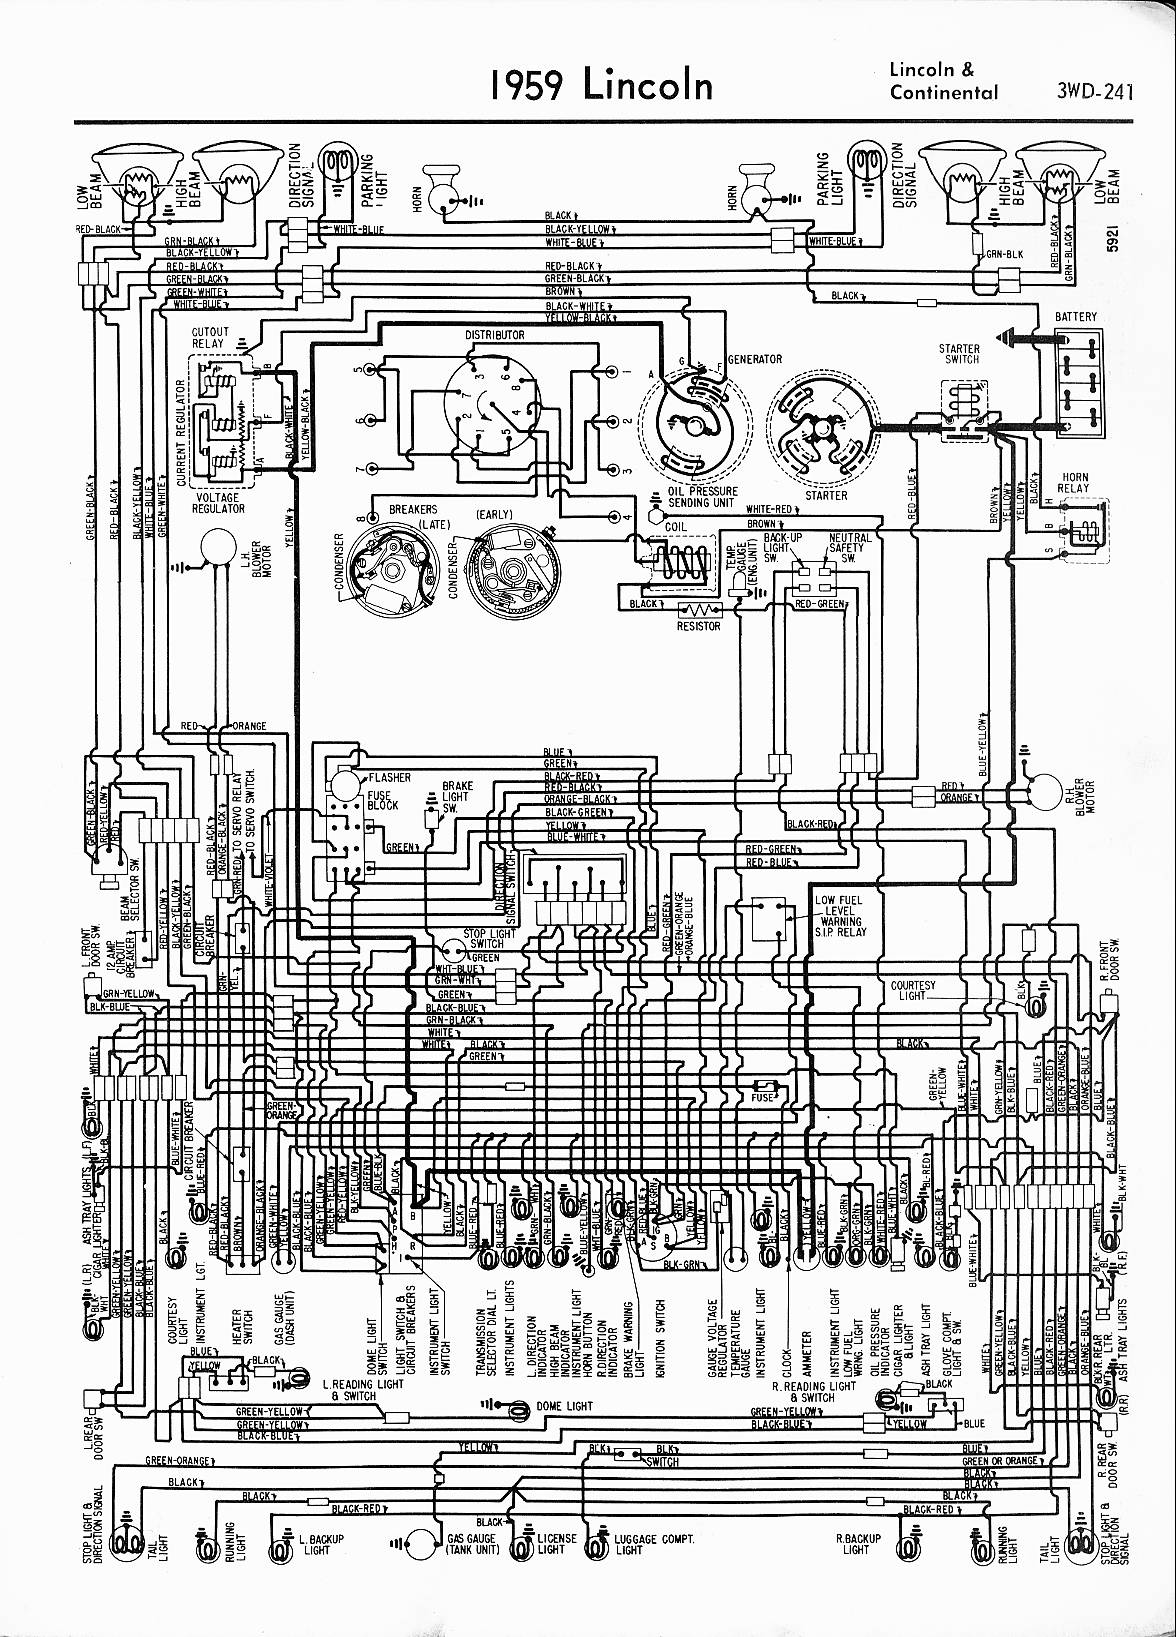 unimac wiring diagram huebsch gas dryer wiring diagram huebsch